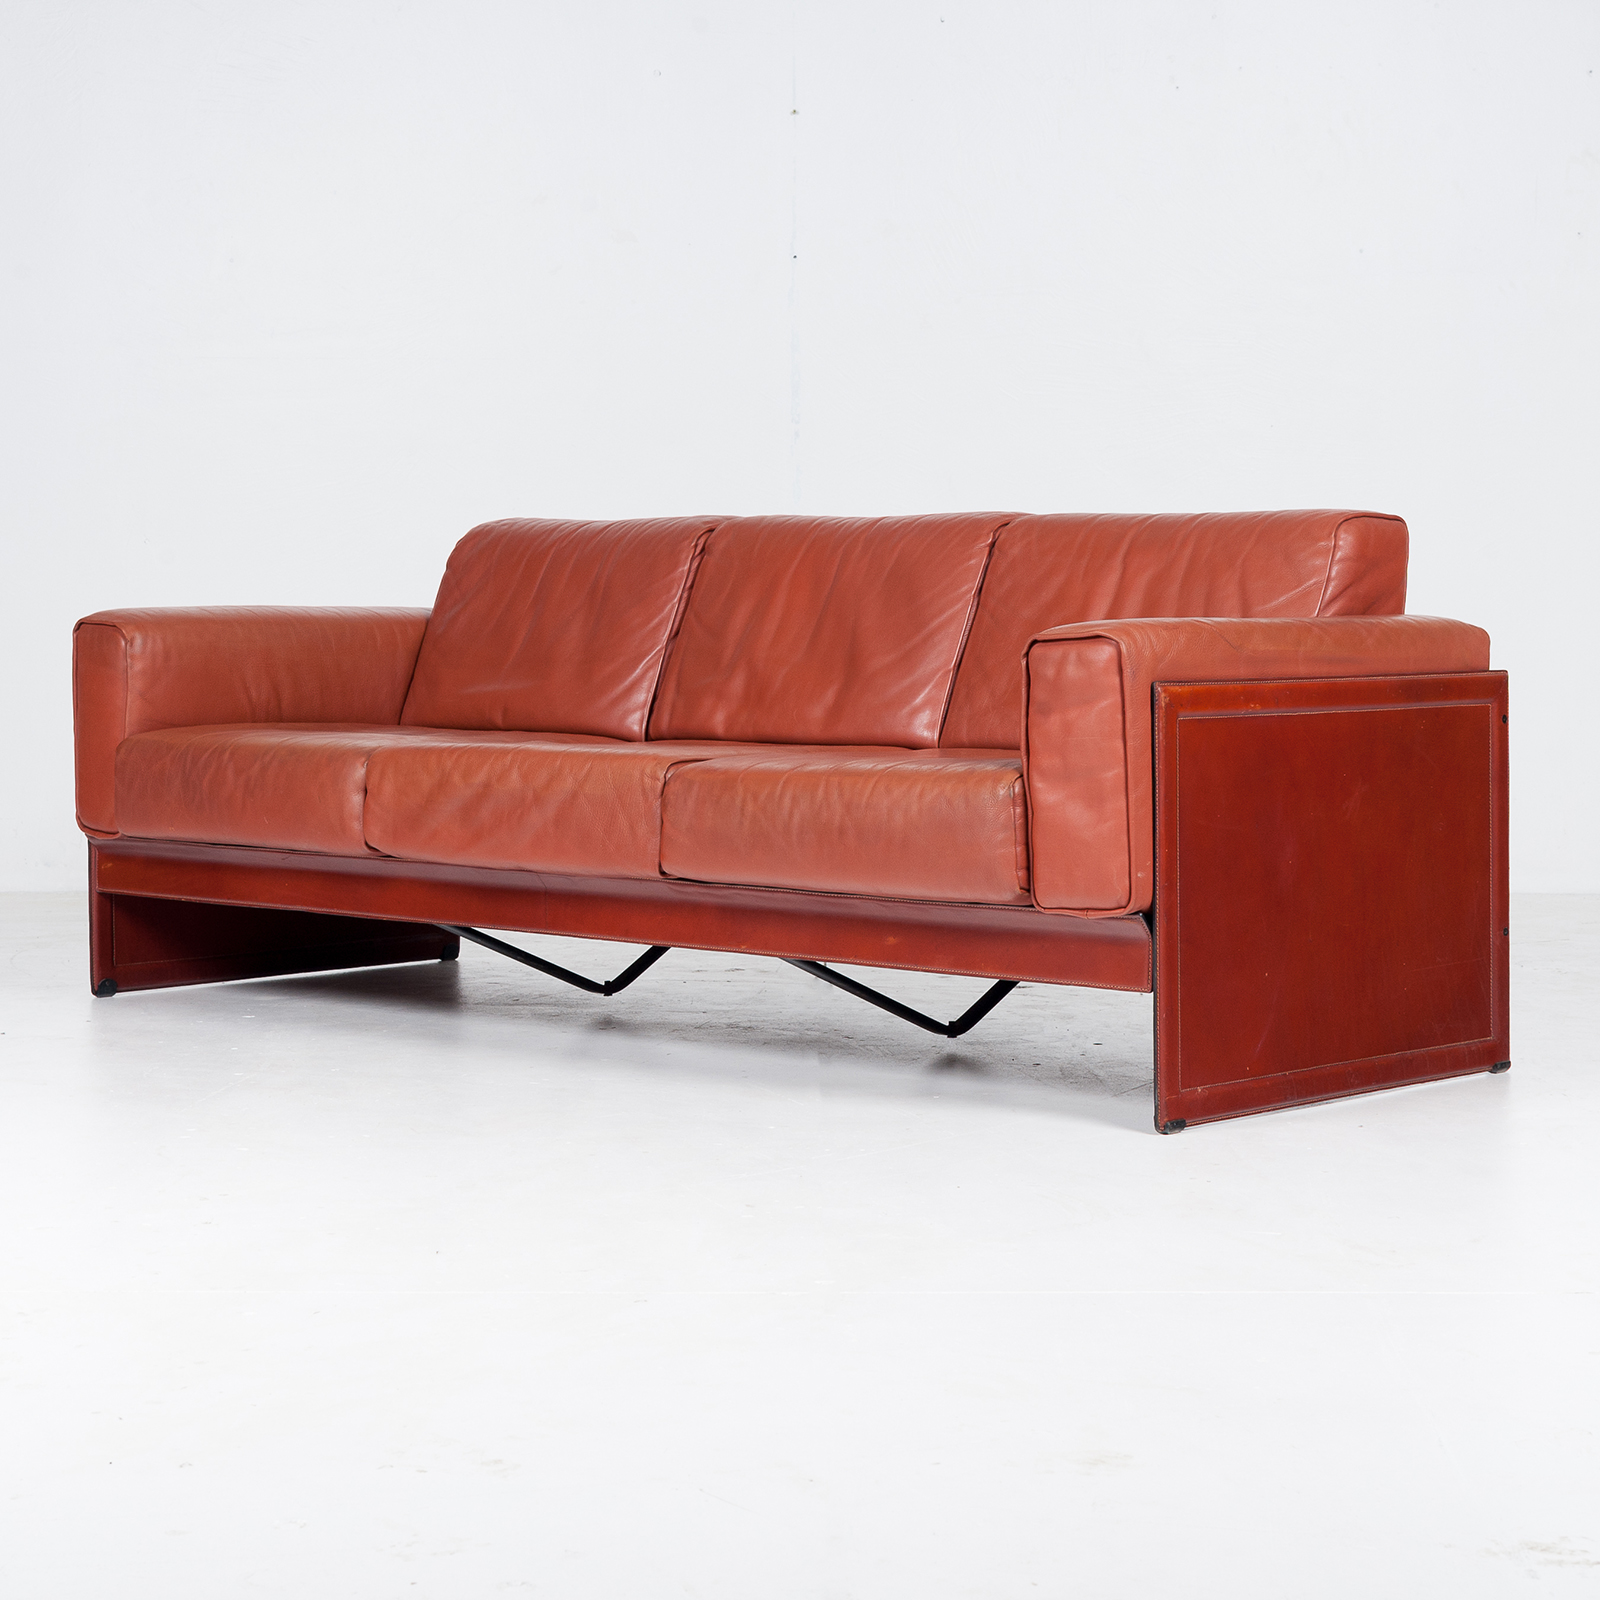 3 Seat Sofa In Leather By Matteo Grassi, 1980s, Italy50